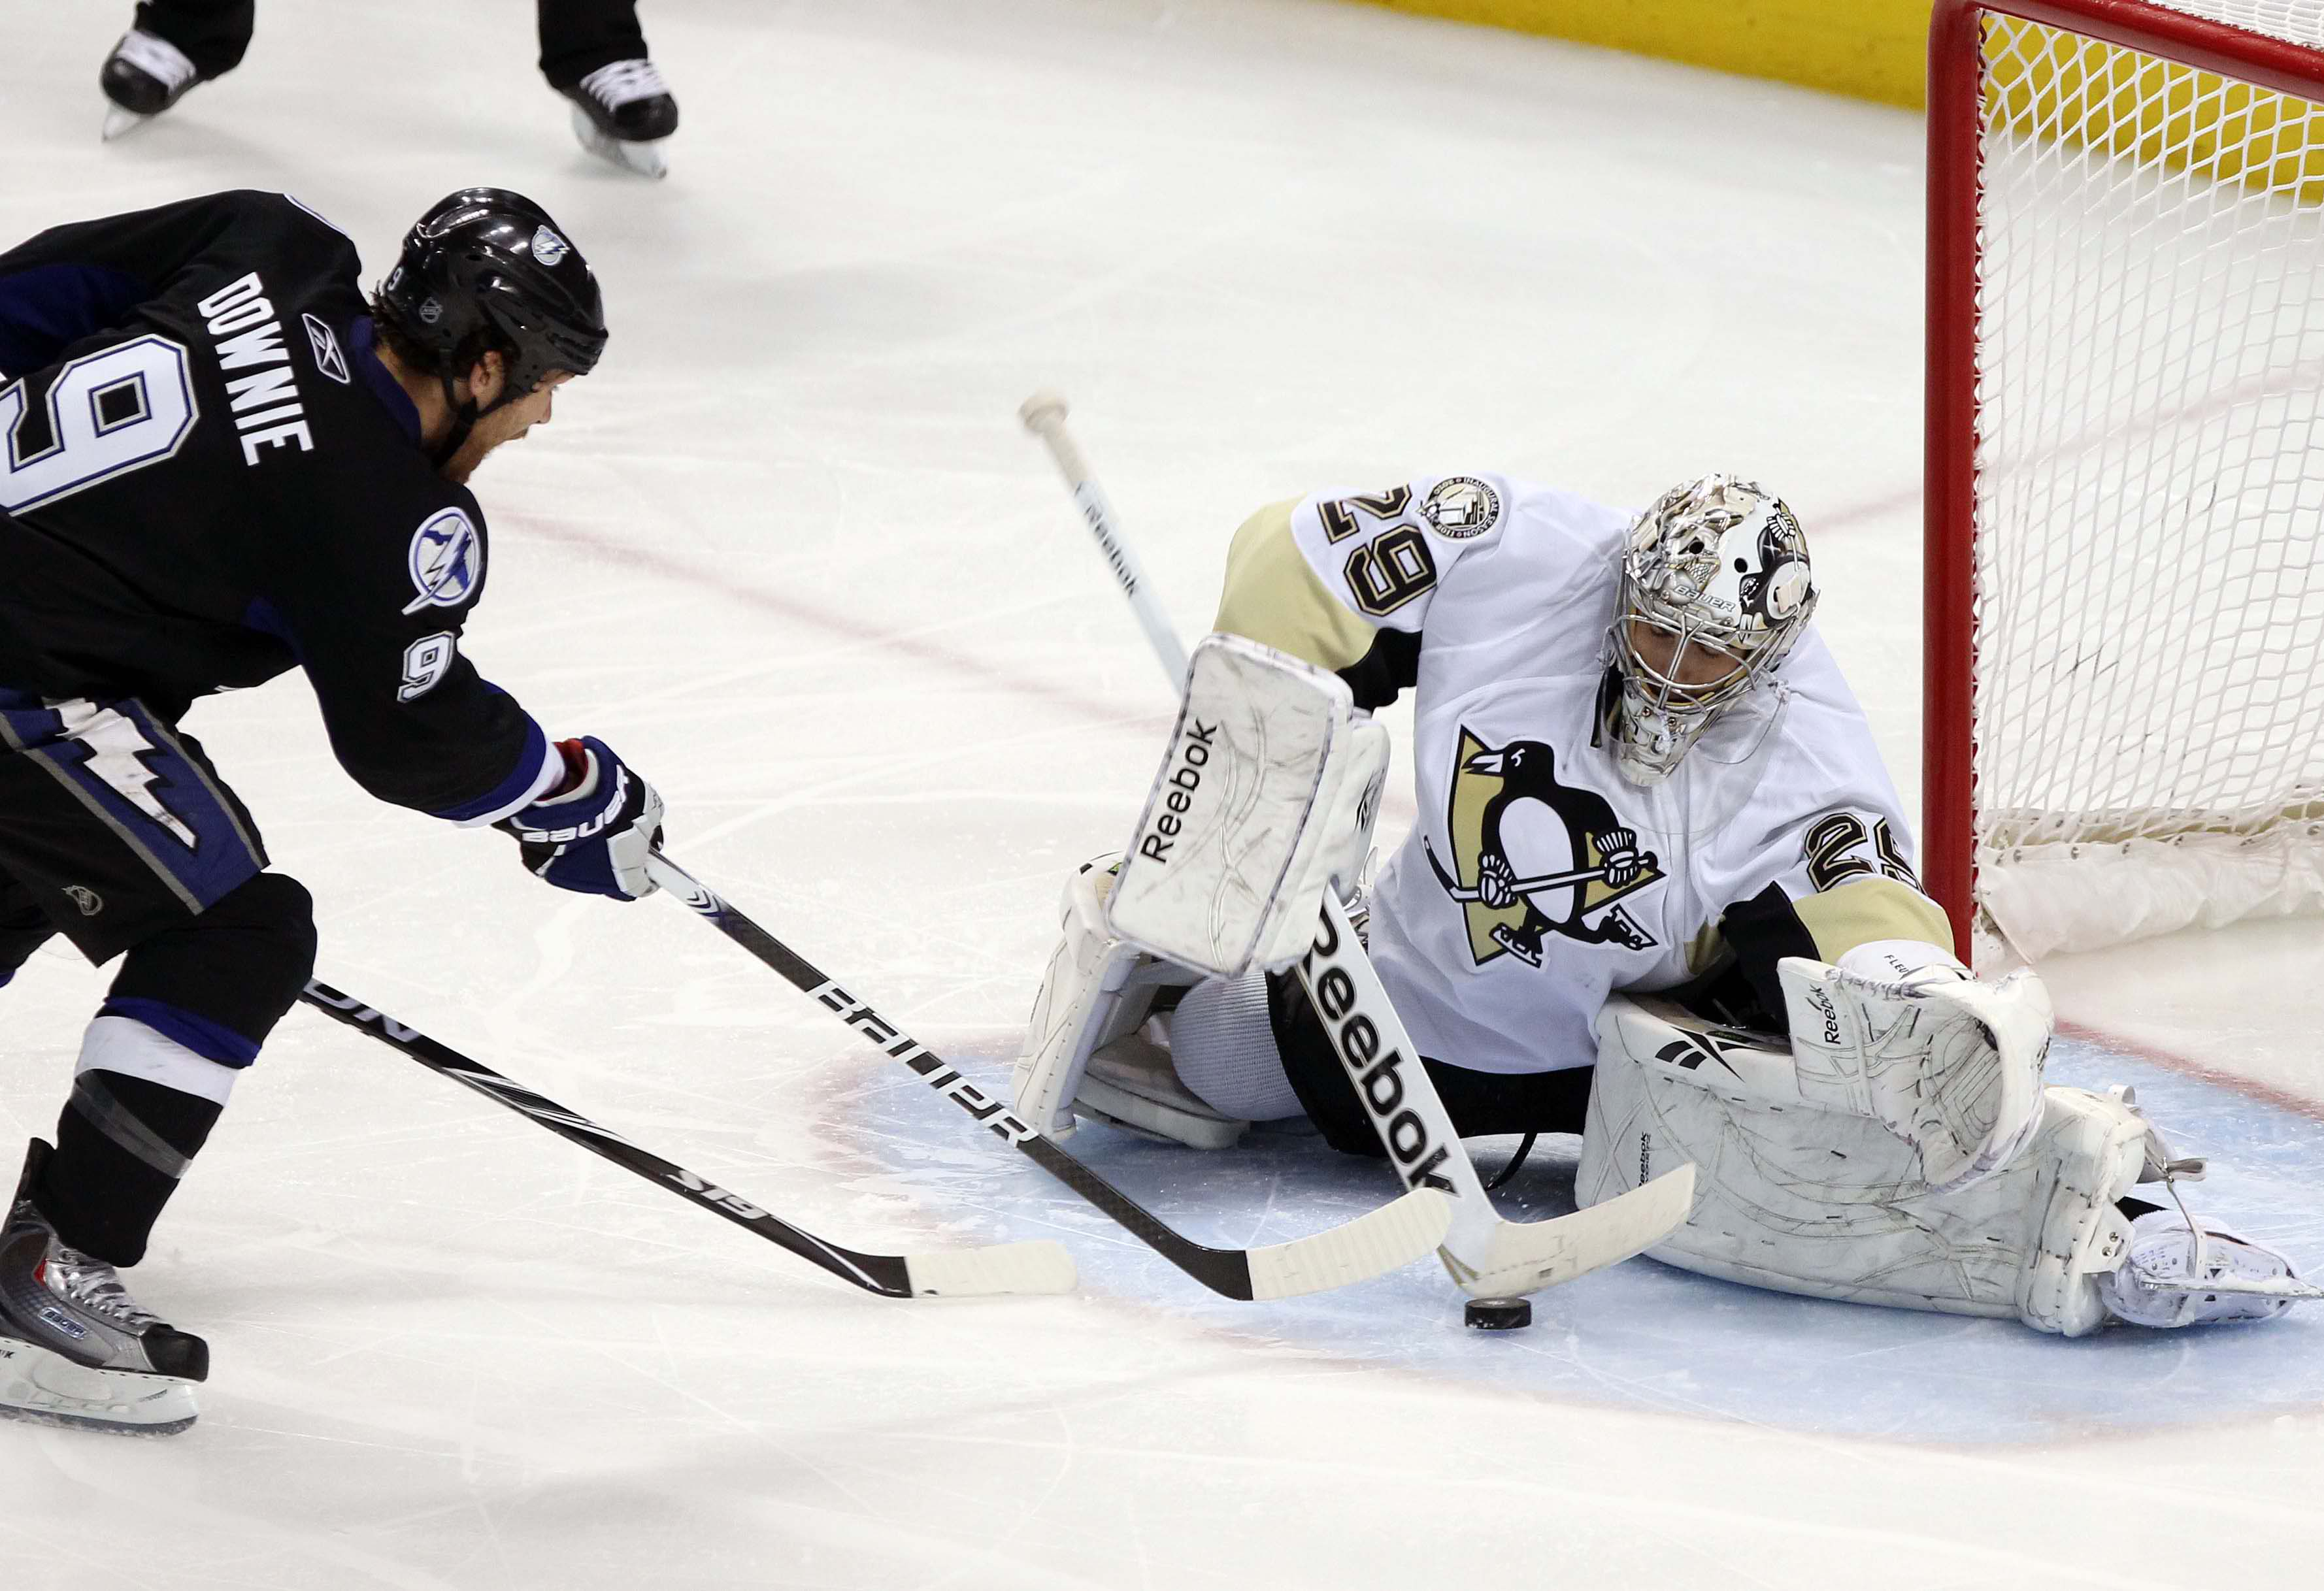 Marc Andre Fleury Save Game 7 Uspw Downs Scores